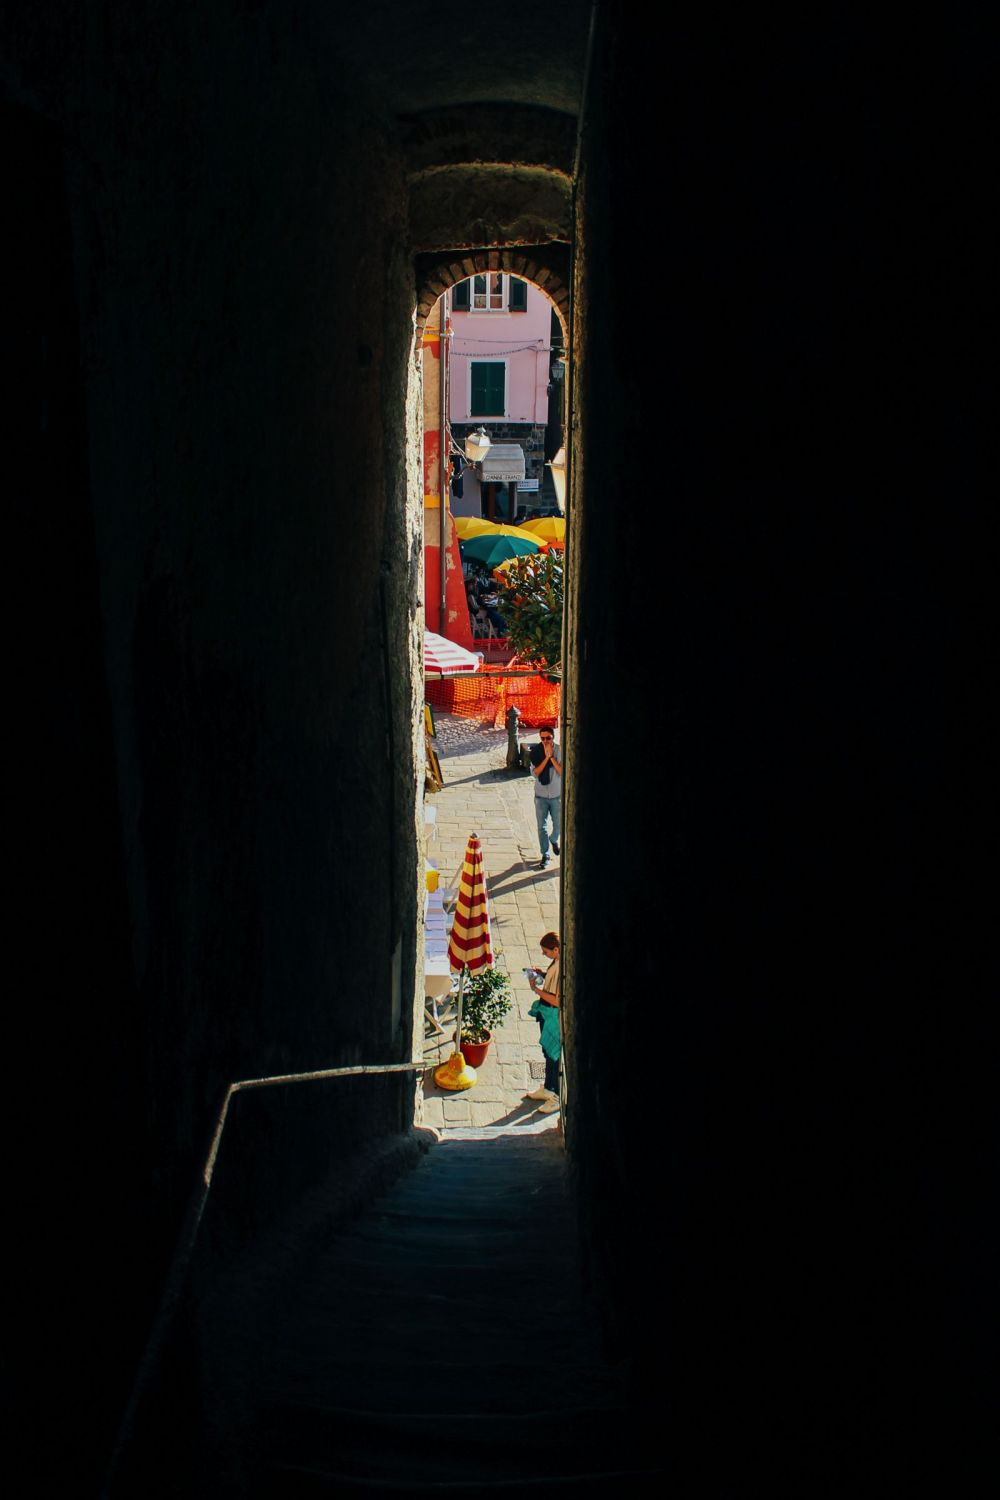 Vernazza in Cinque Terre, Italy - The Photo Diary! [4 of 5] (3)